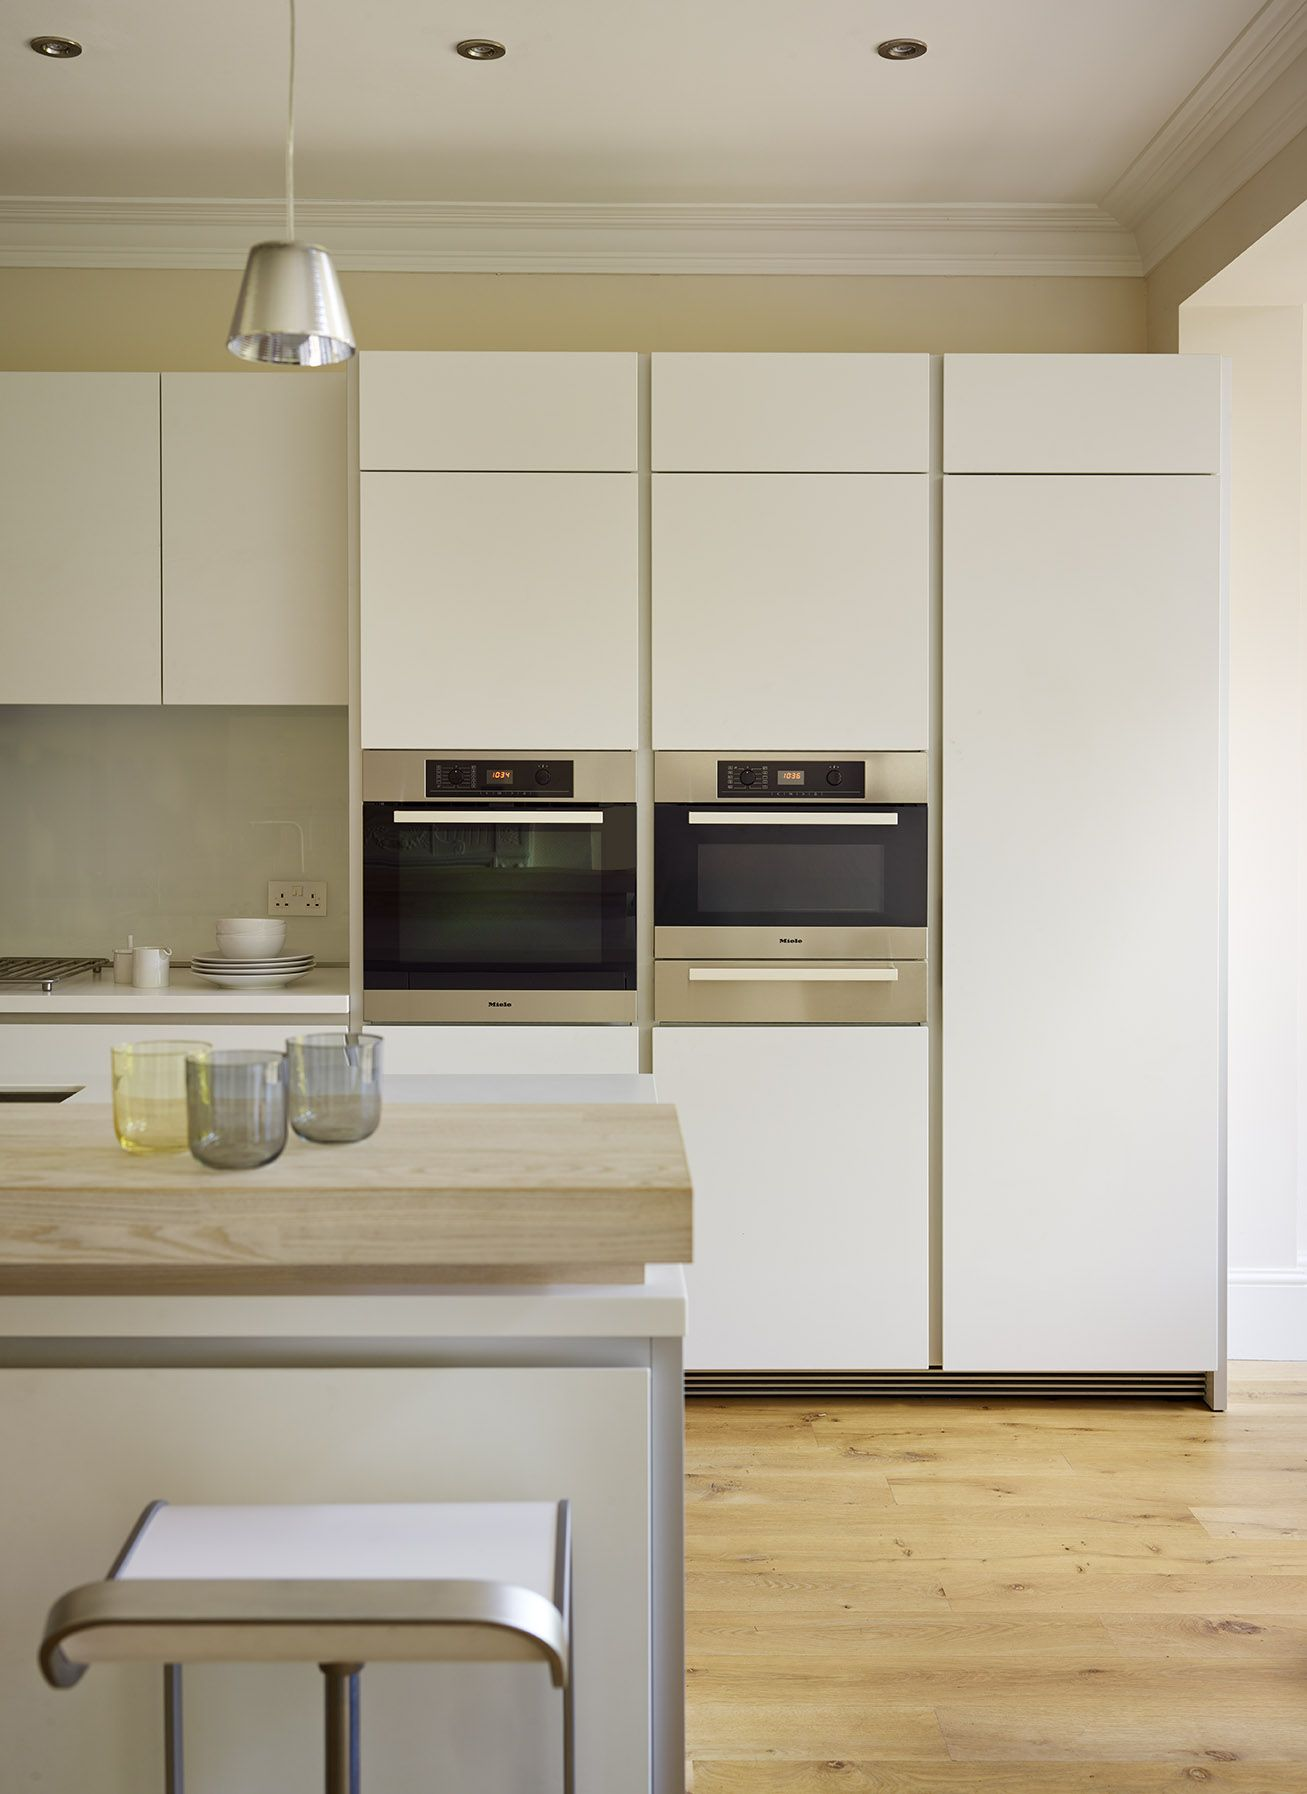 Bulthaup By Kitchen Architecture Kitchens B1 Www Bulthaupsf Com  # Muebles Bulthaup